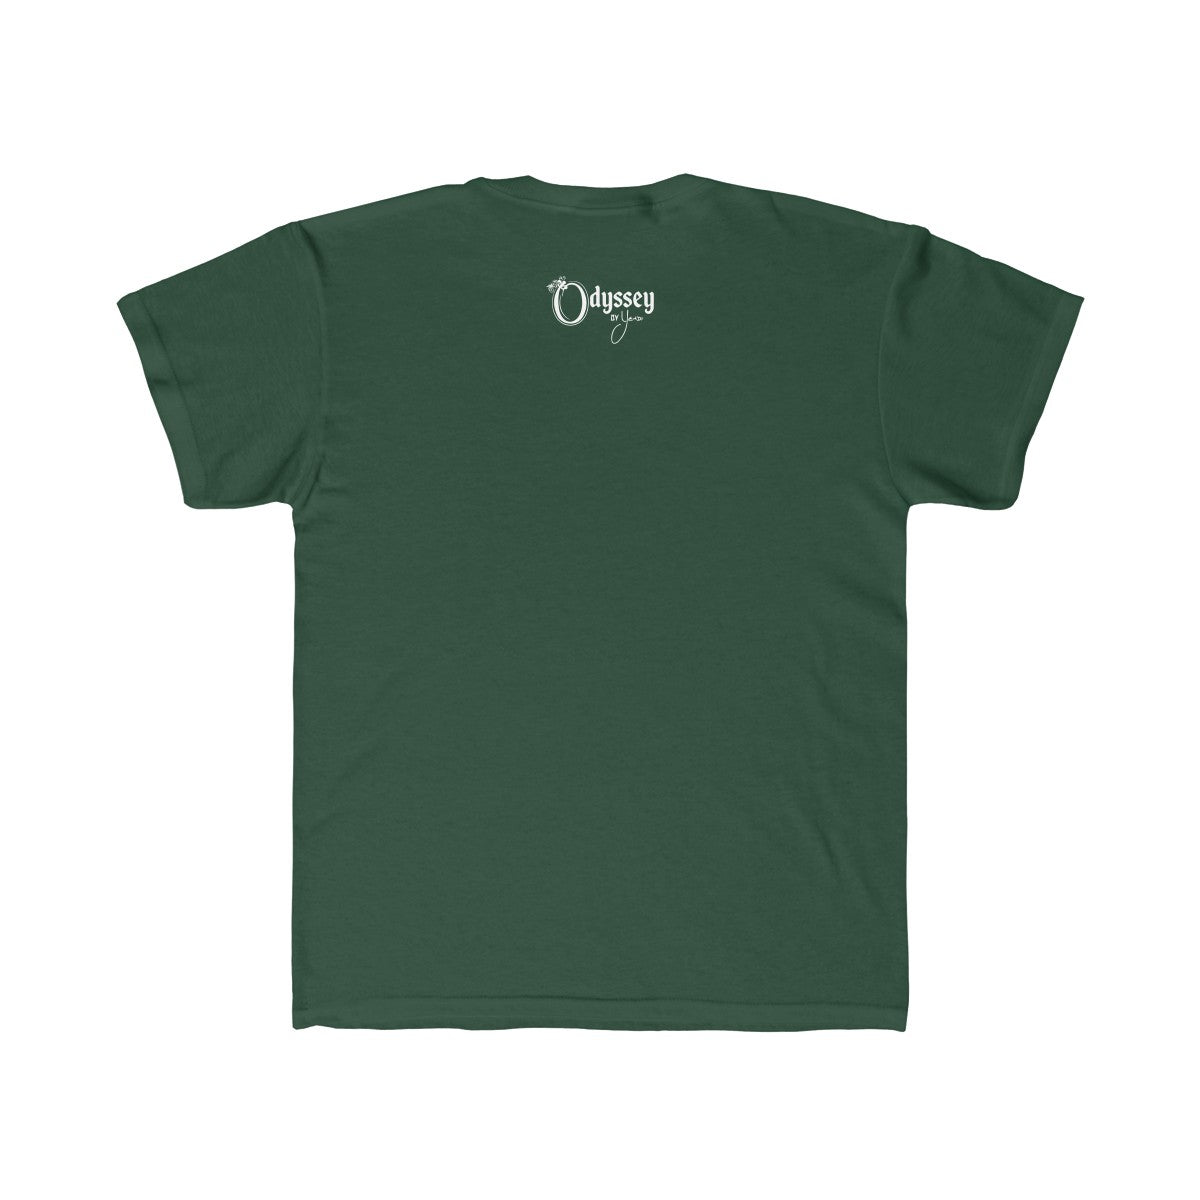 Odyssey Saved By Grace Kids Tee